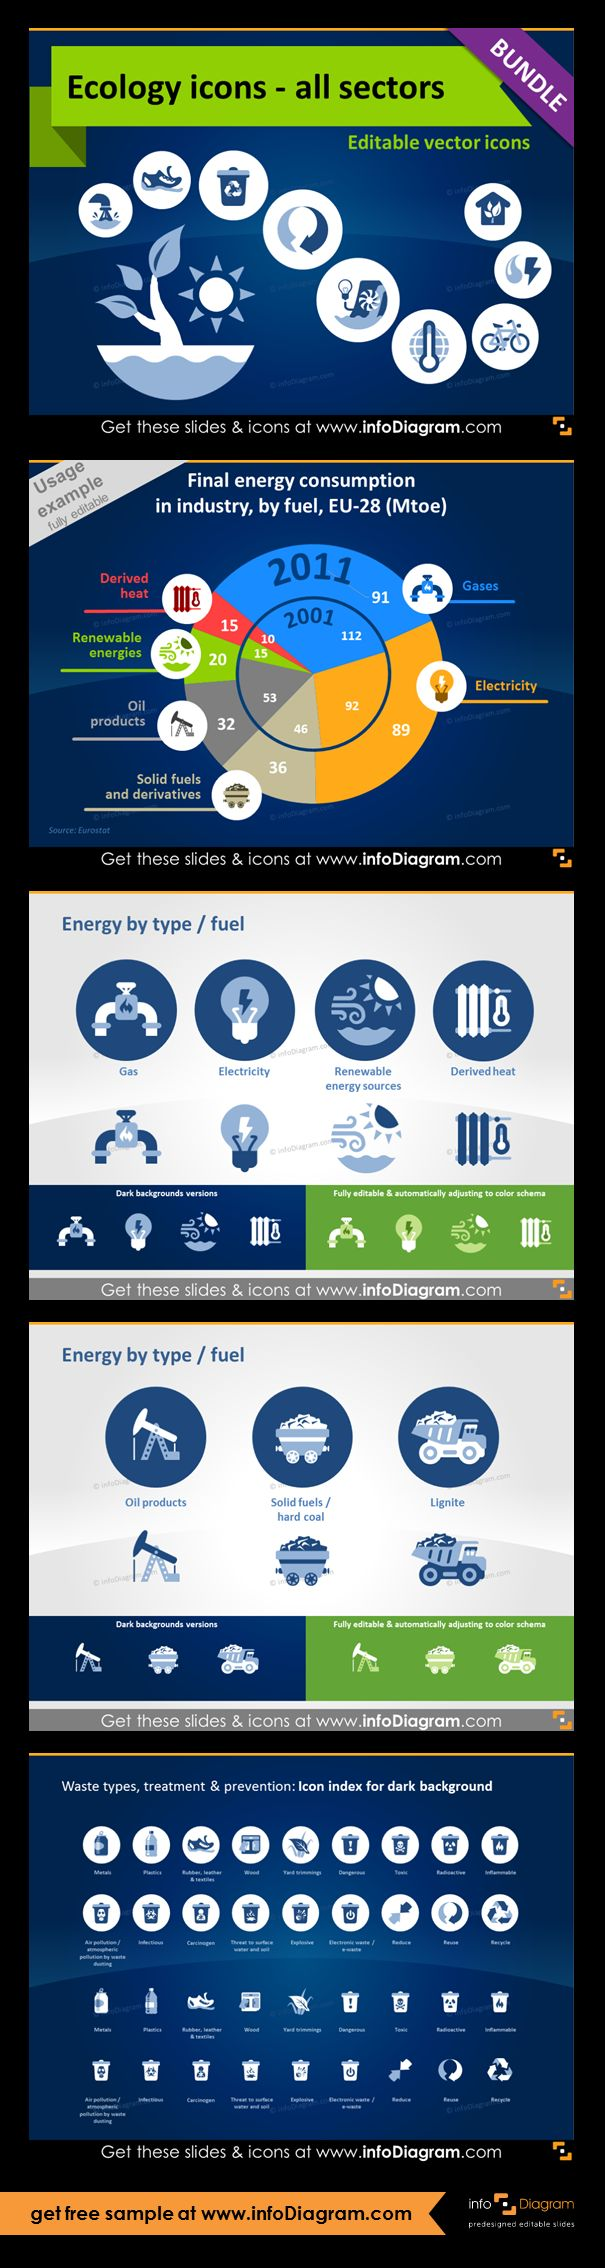 Ecology icons and visuals for ecology related presentations. Final energy consumption in industry, by fuel (infographics) example chart. Types of energy and fuel: Gas, Electricity, Renewable energy sources, Derived heat, Oil products, Solid fuels / hard coal, lignite. All symbols are as clipart pictures - fully editable in PowerPoint.